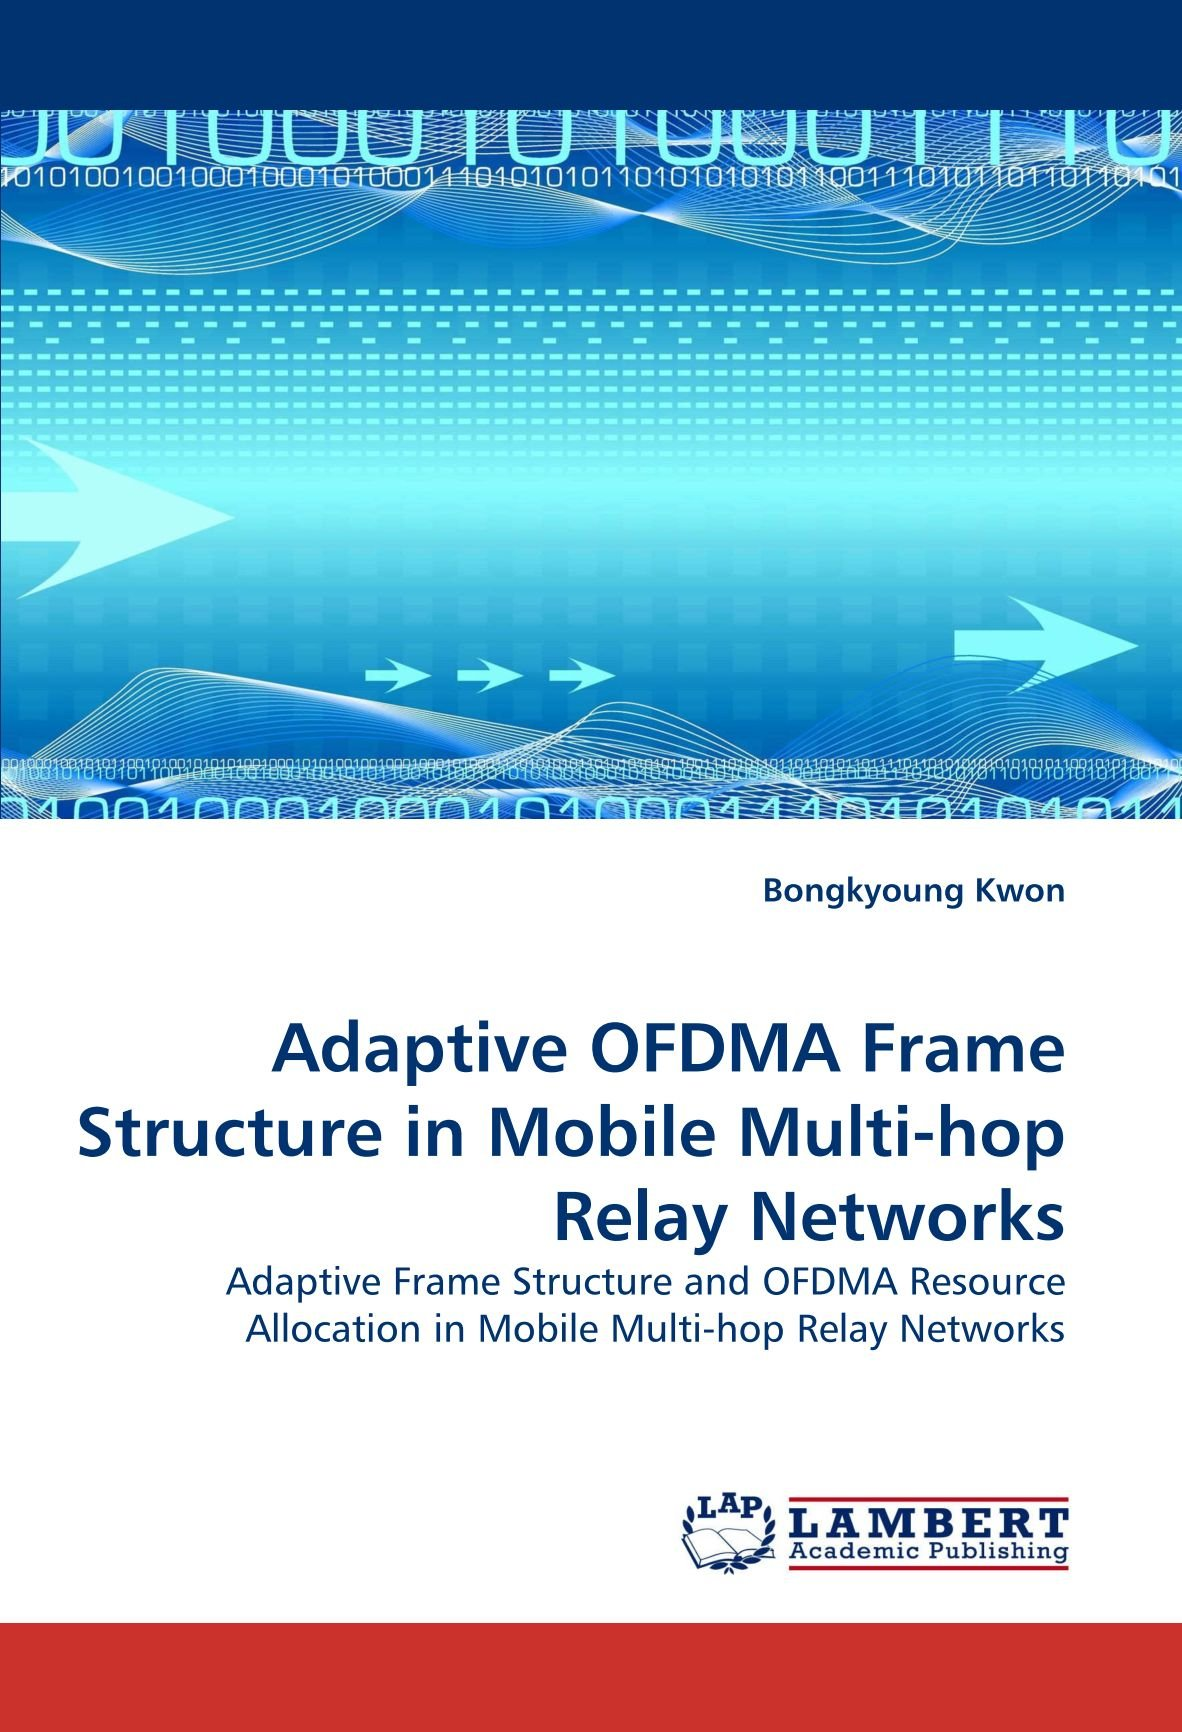 Download Adaptive OFDMA Frame Structure in Mobile Multi-hop Relay Networks: Adaptive Frame Structure and OFDMA Resource Allocation in Mobile Multi-hop Relay Networks pdf